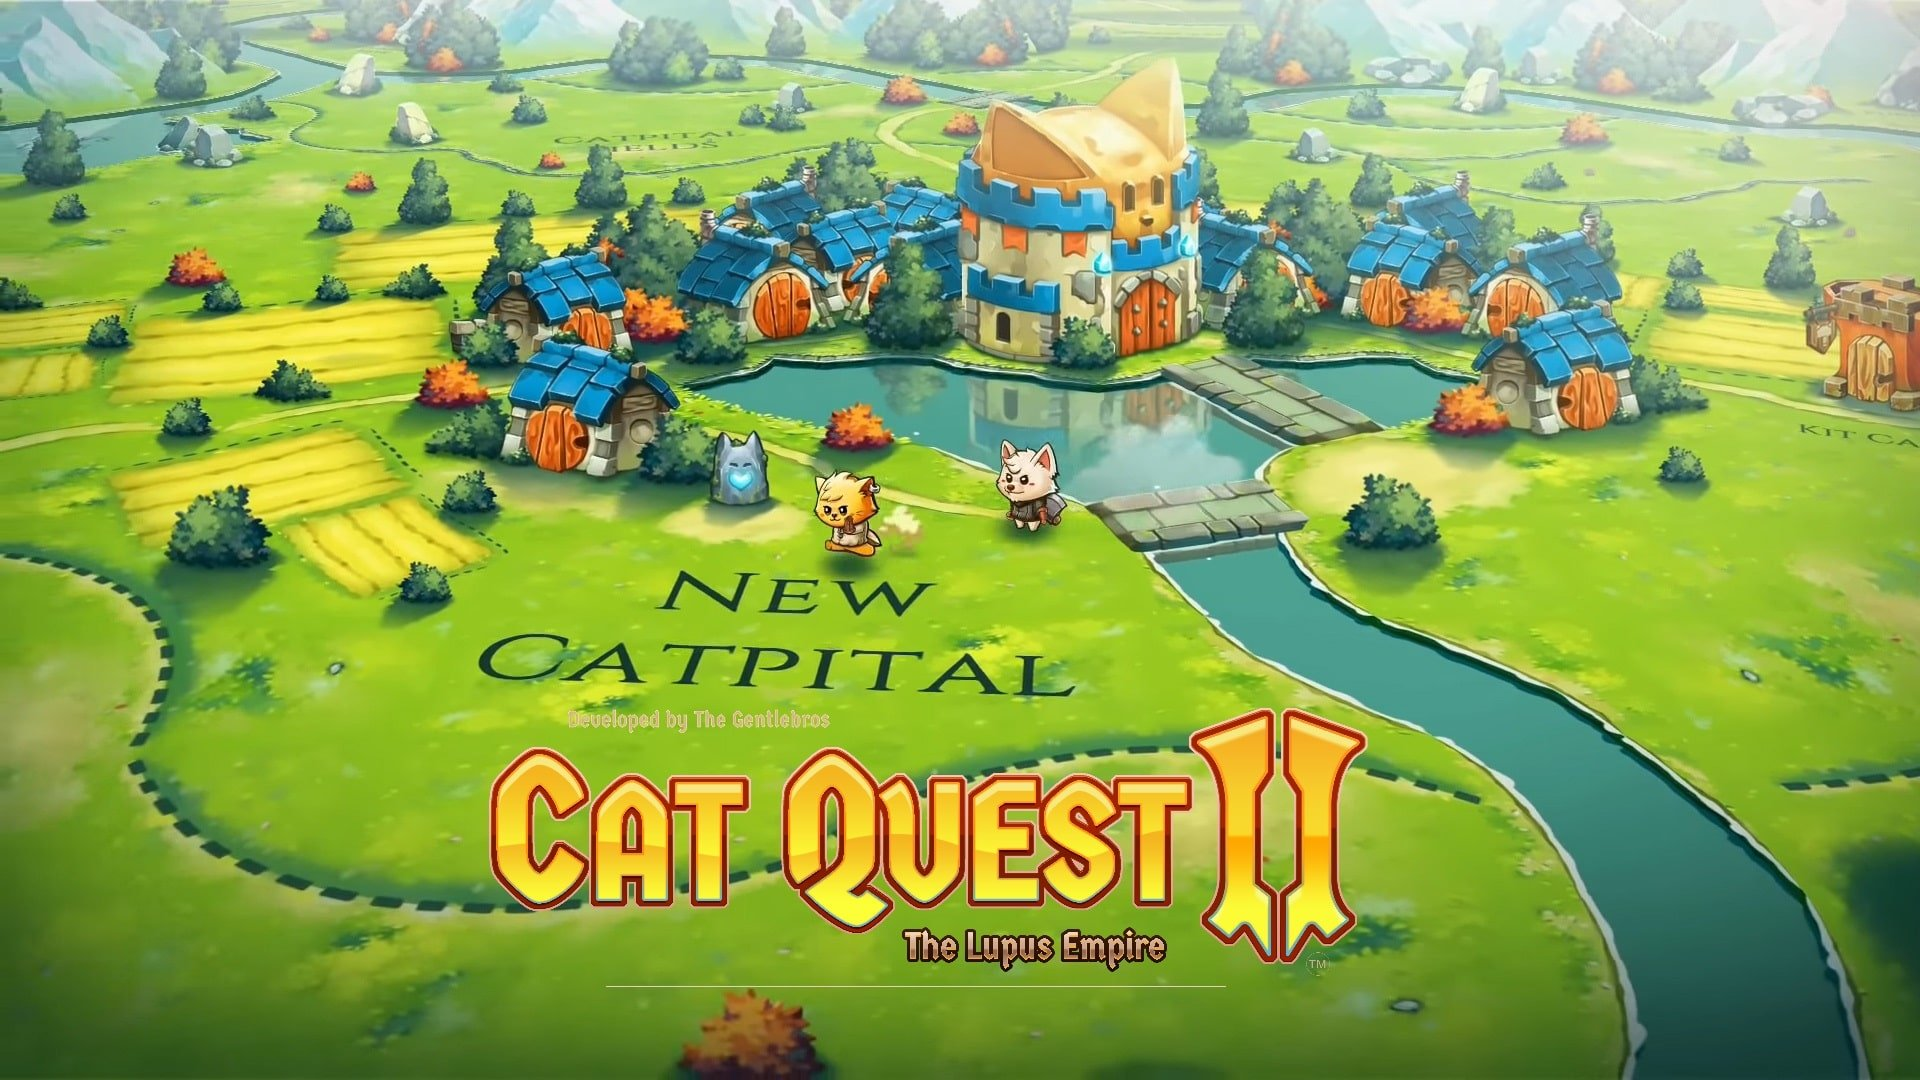 Cat Quest II – Planned for September 2019